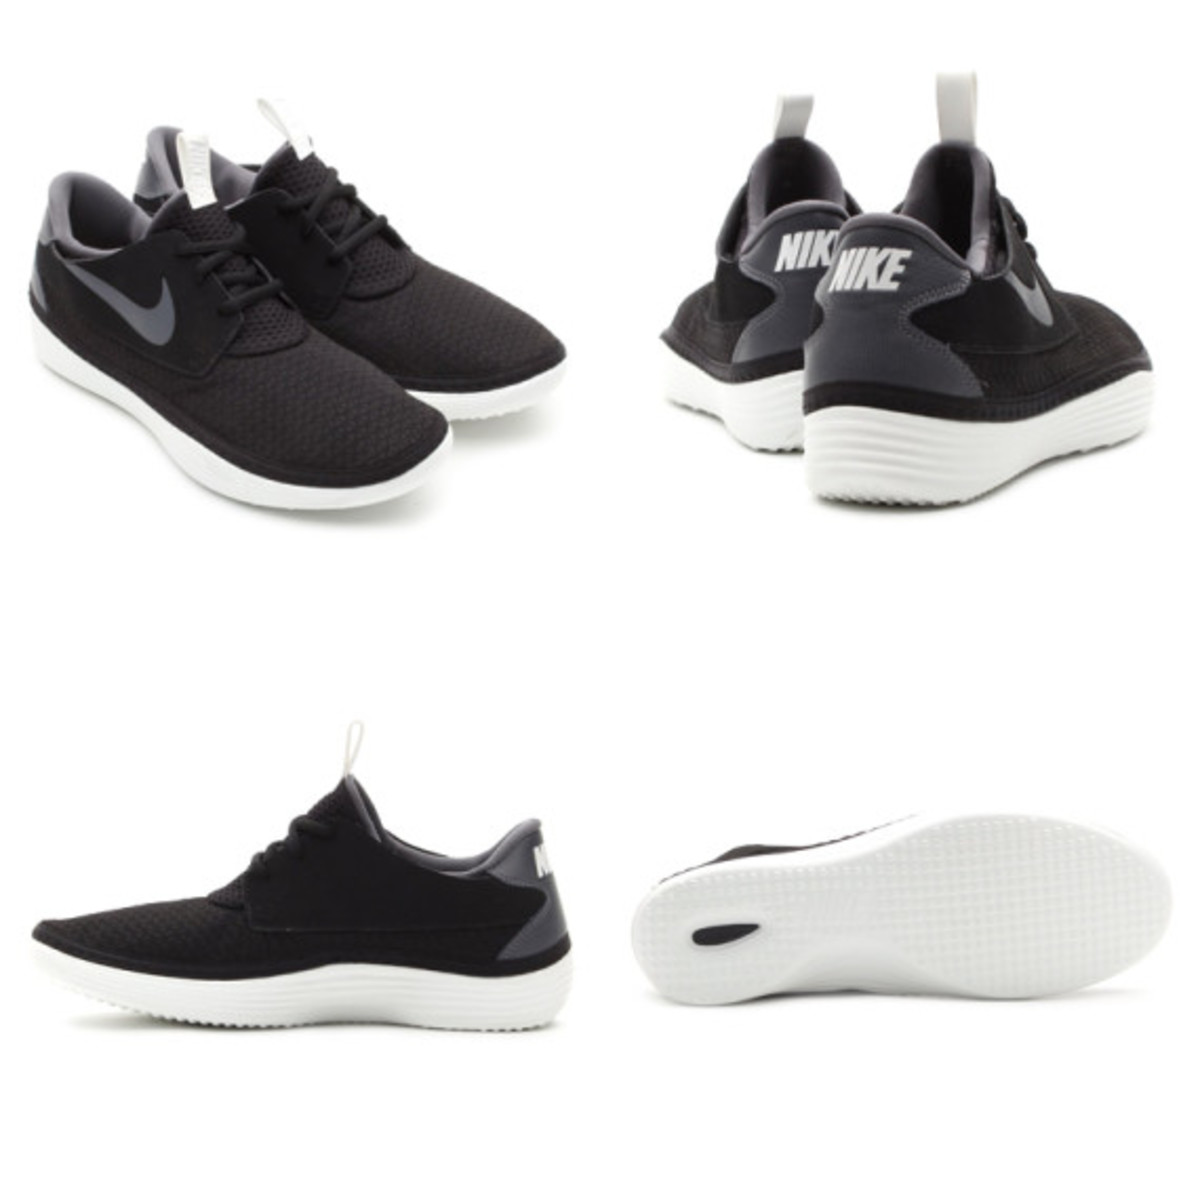 Nike Solarsoft Moccasin - Summer 2013 Collection